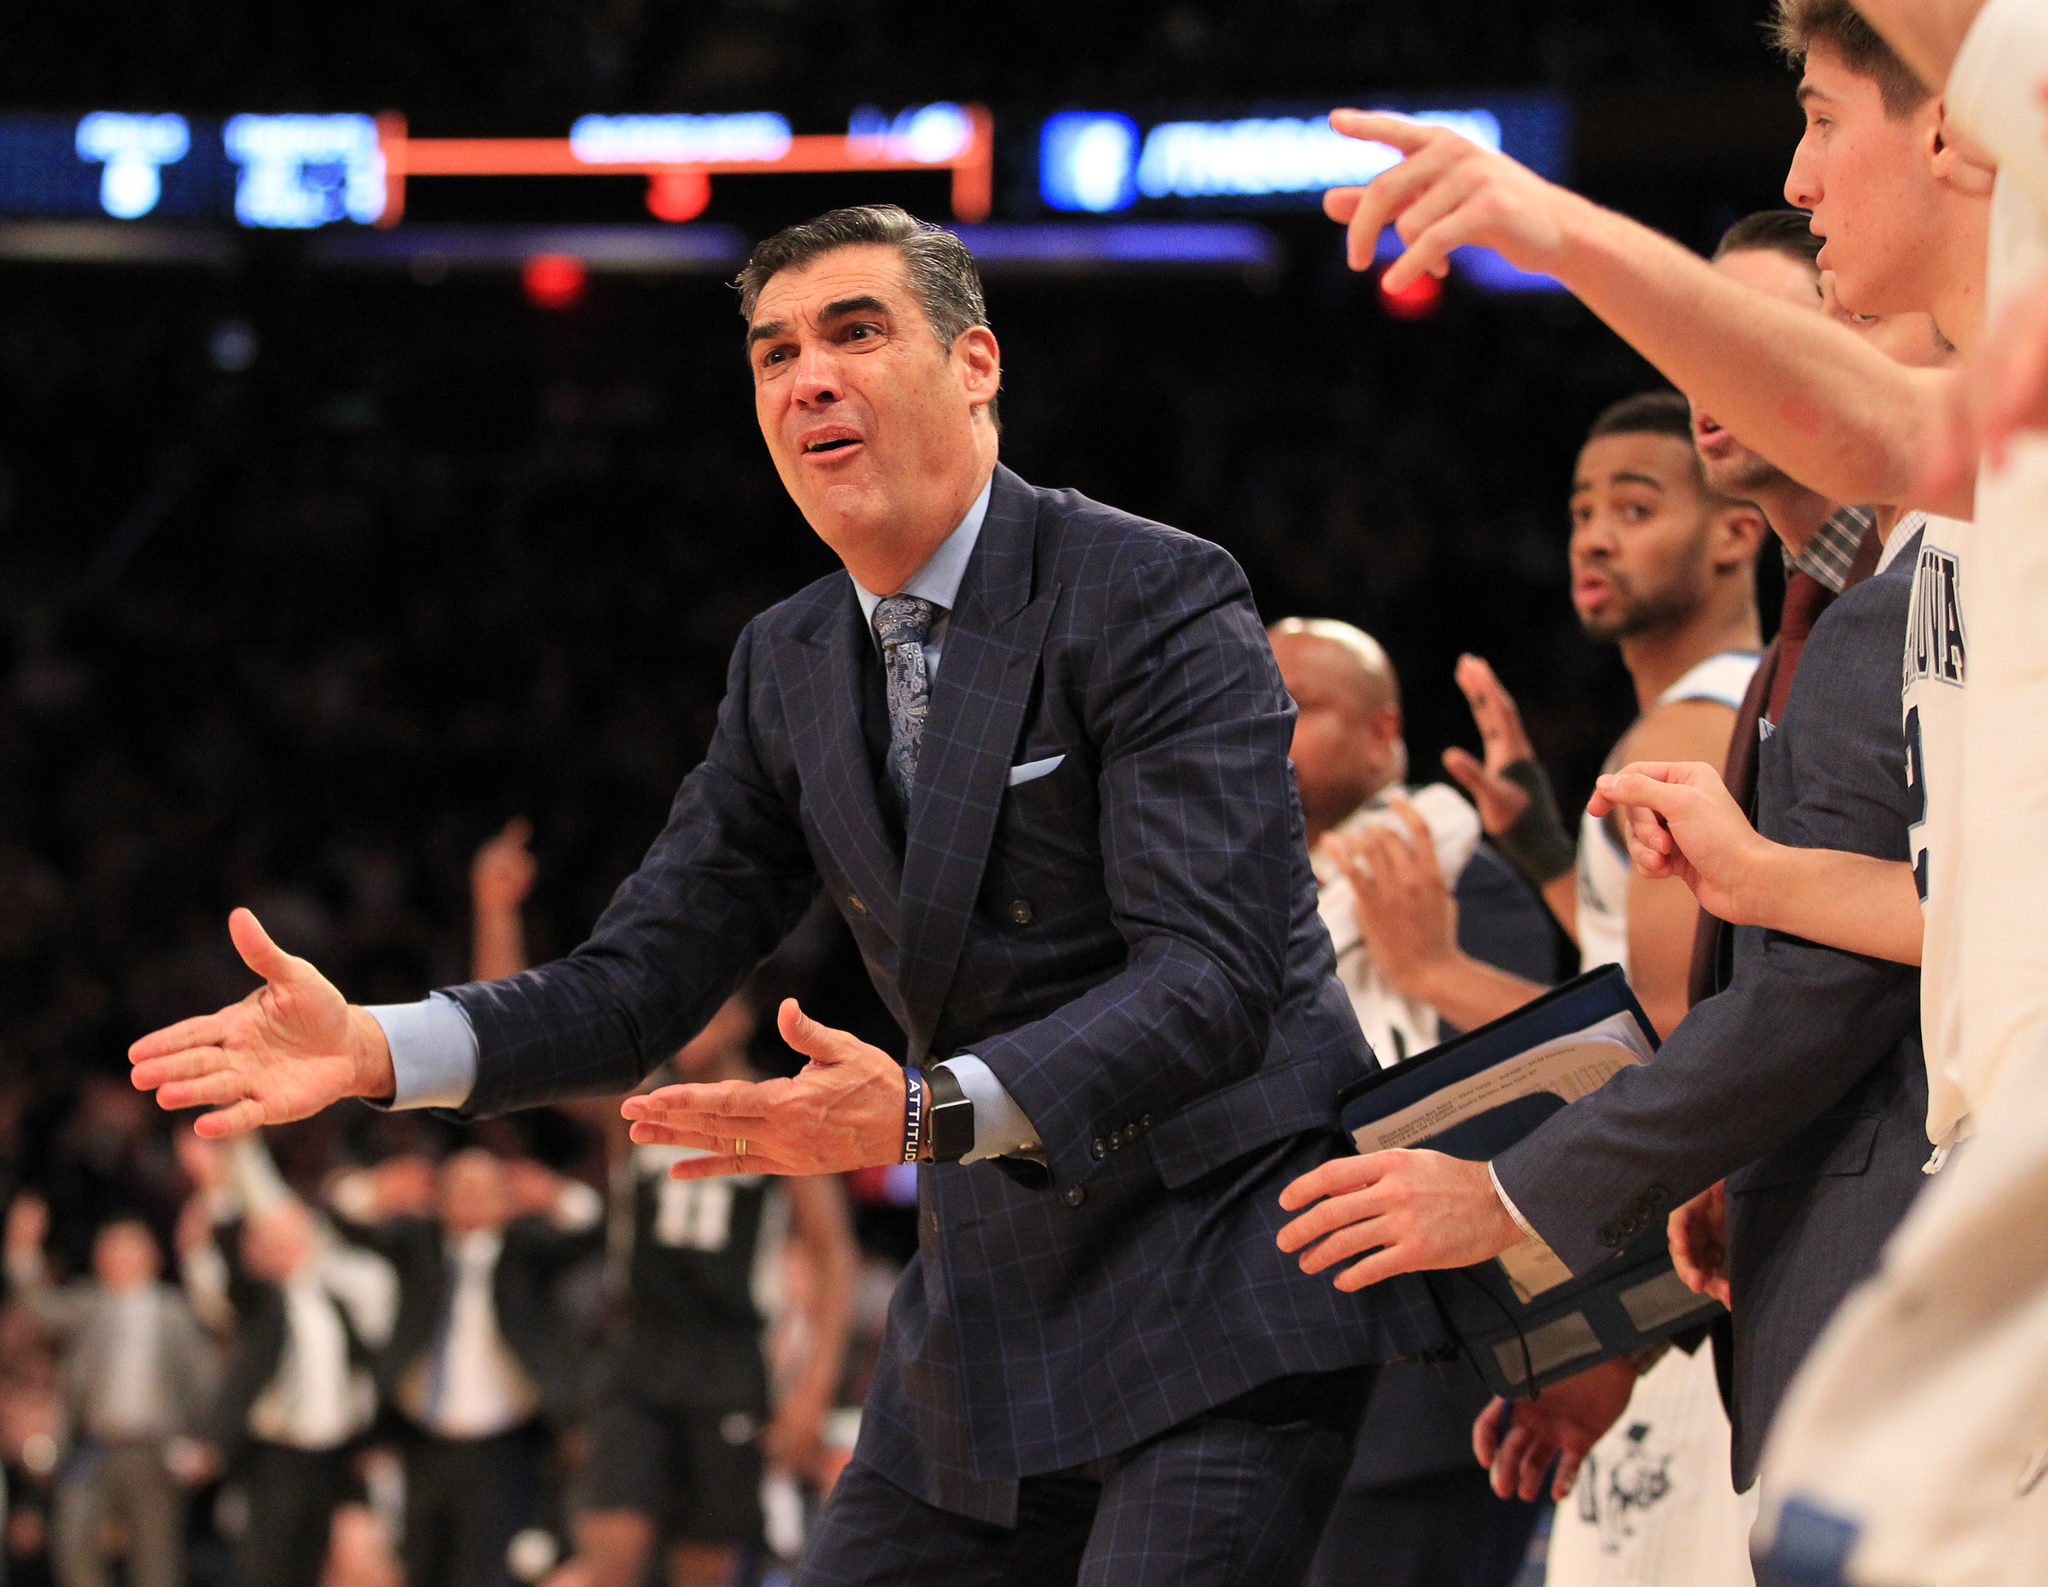 Villanova Coach Jay Wright questions an officialÕs call in the Big East Tournament Championship Game at Madison Square Garden on March 10, 2018.